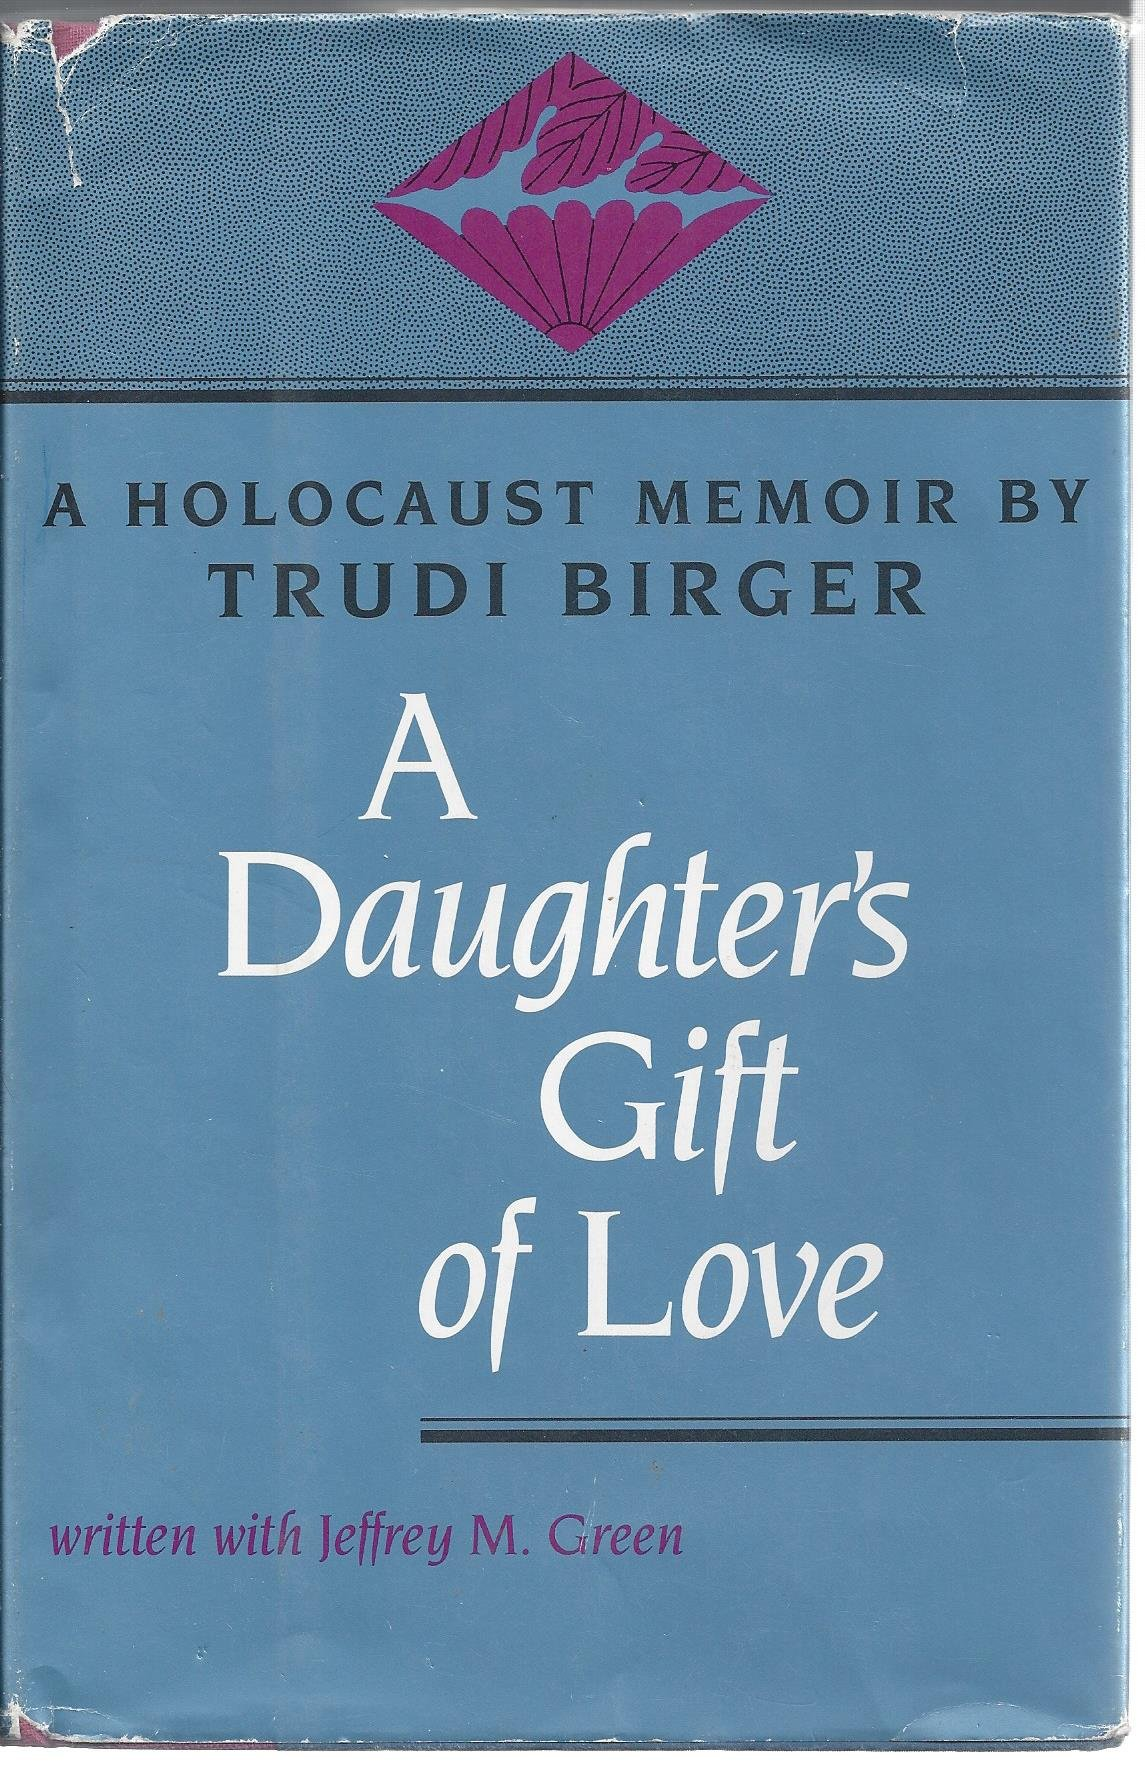 A Daughter's Gift of Love